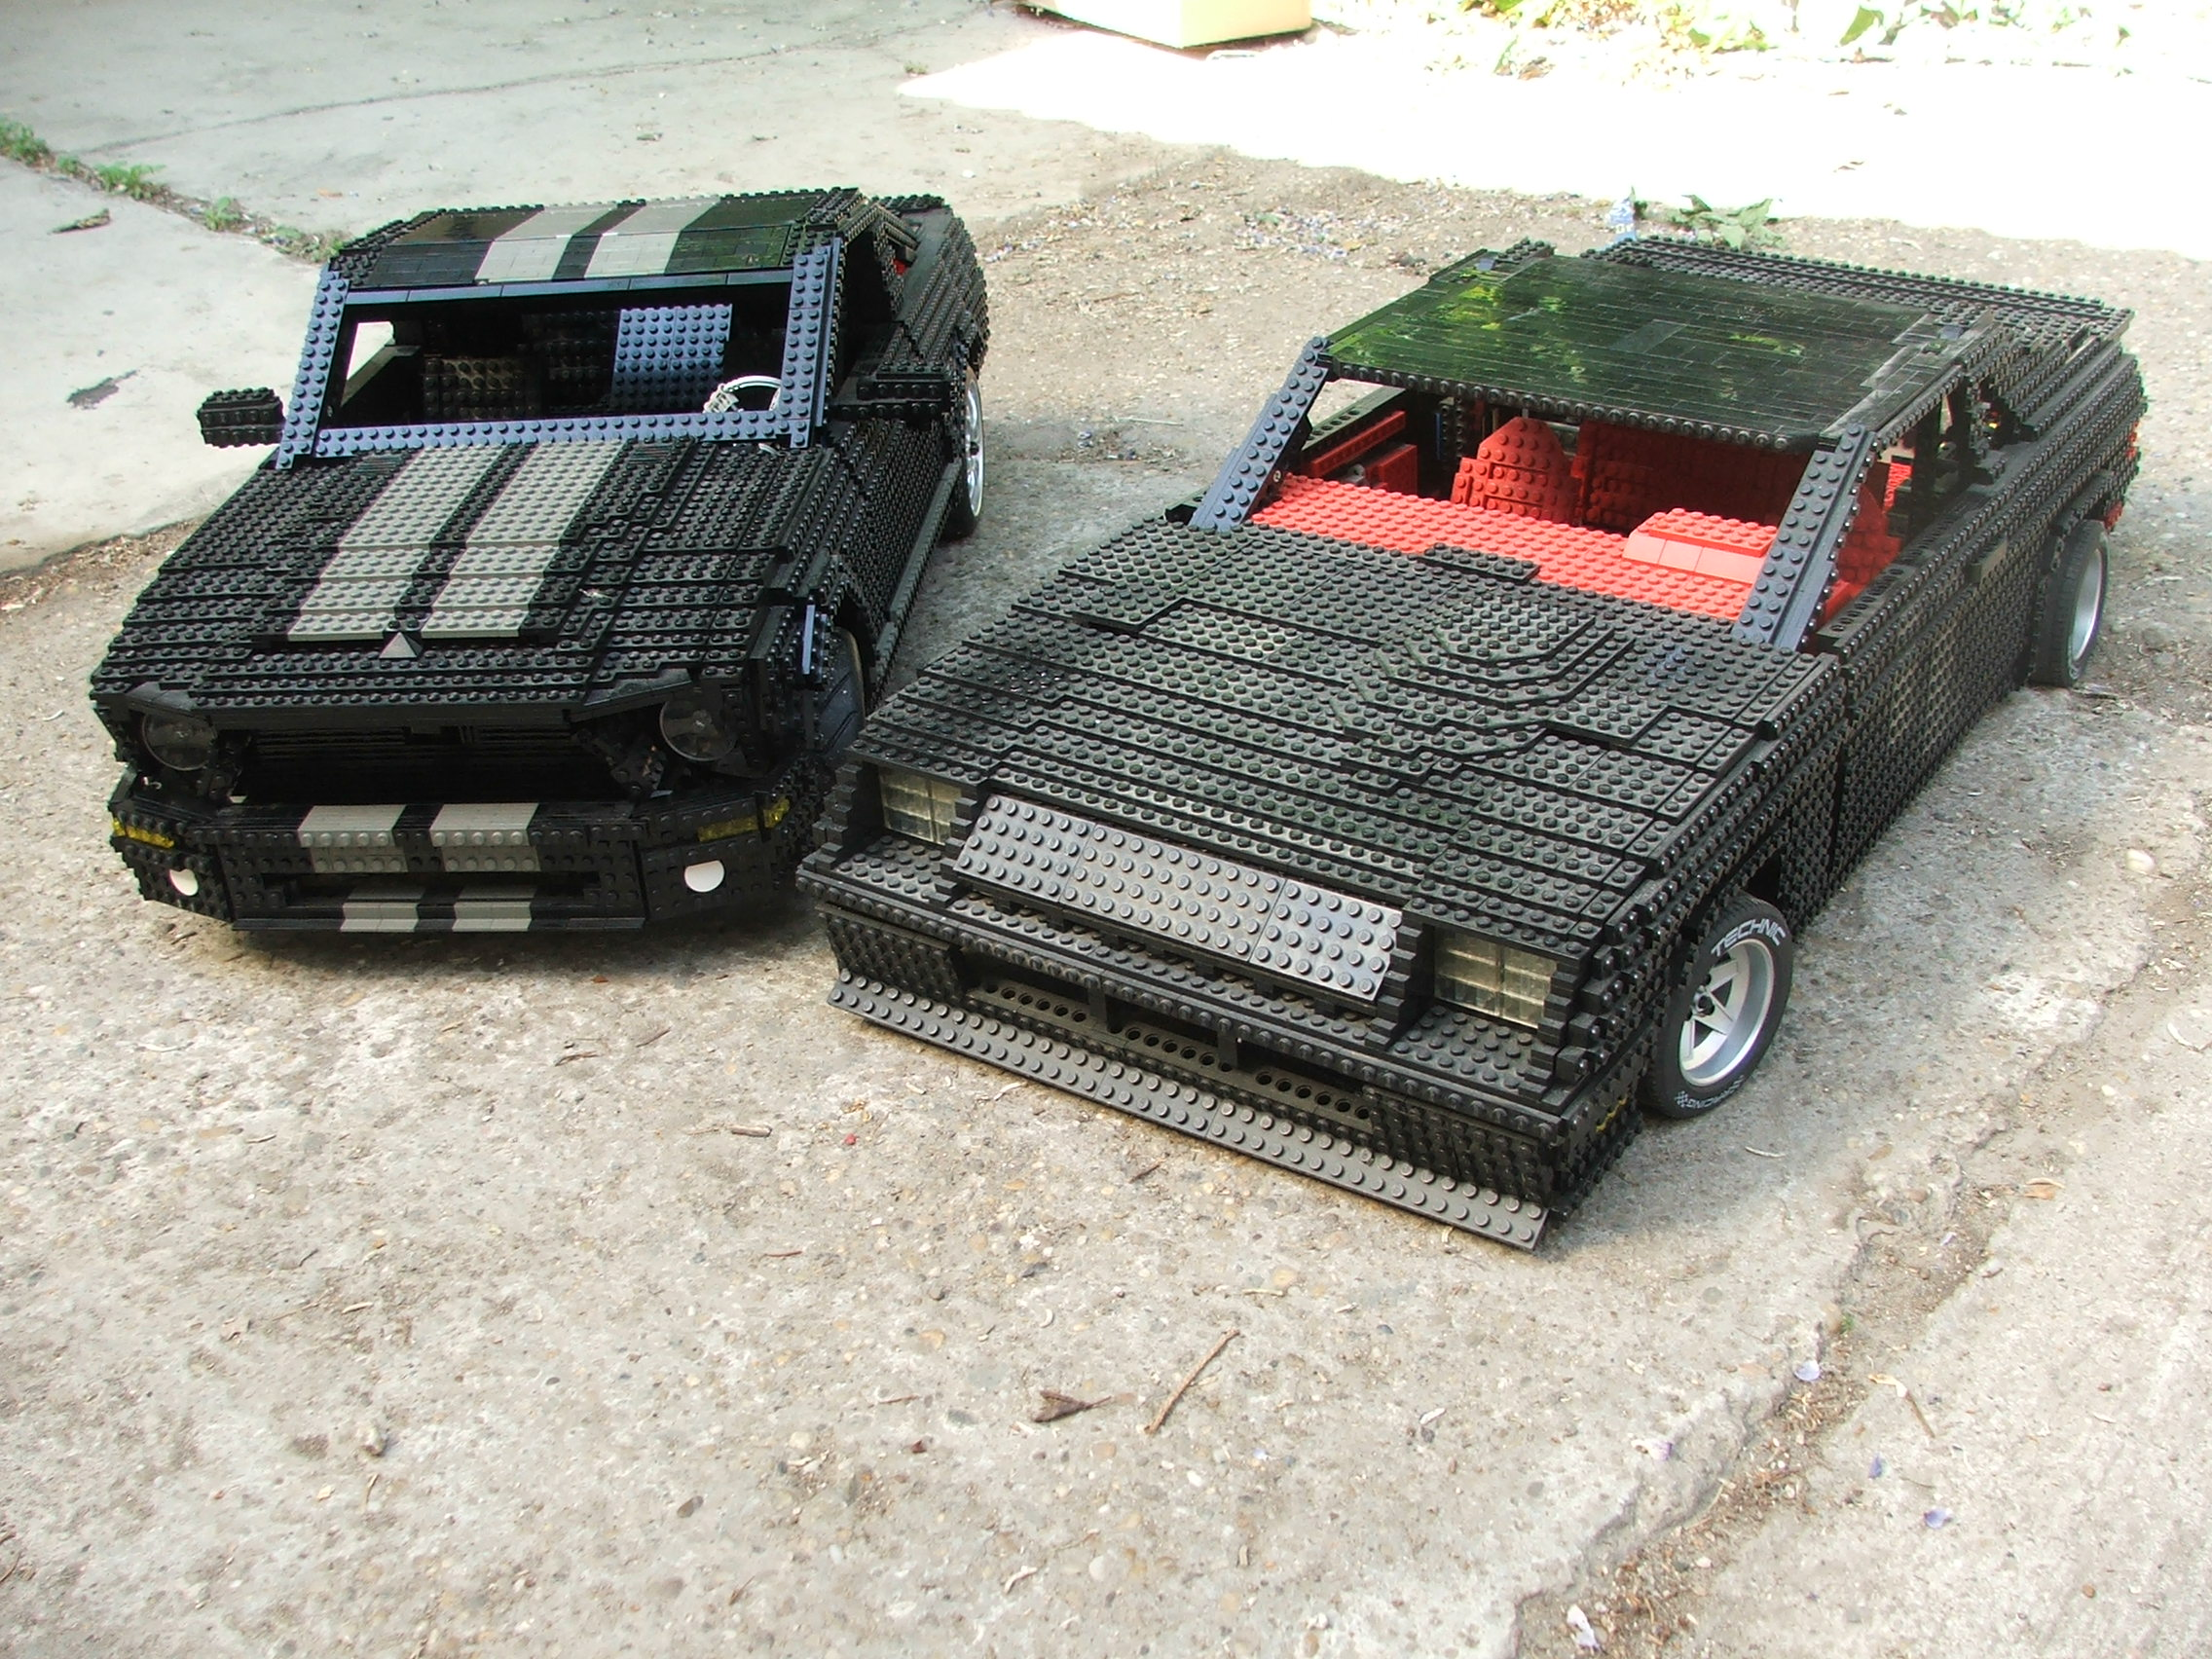 shelby_500kr_vs_shelby_charger_002.jpg